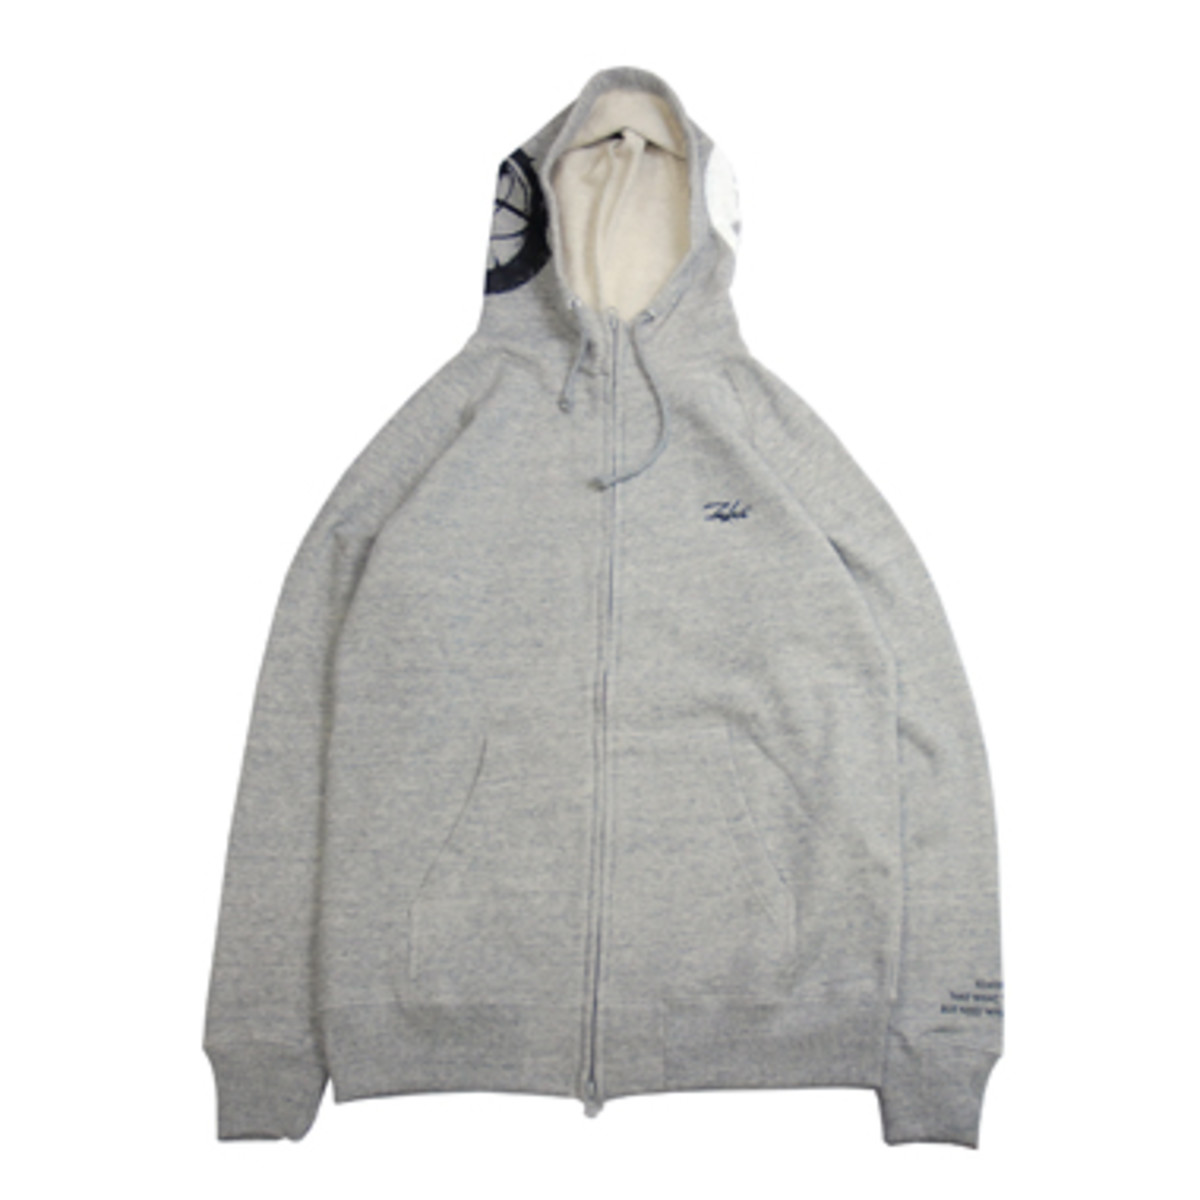 atomic-zip-hoody-grey